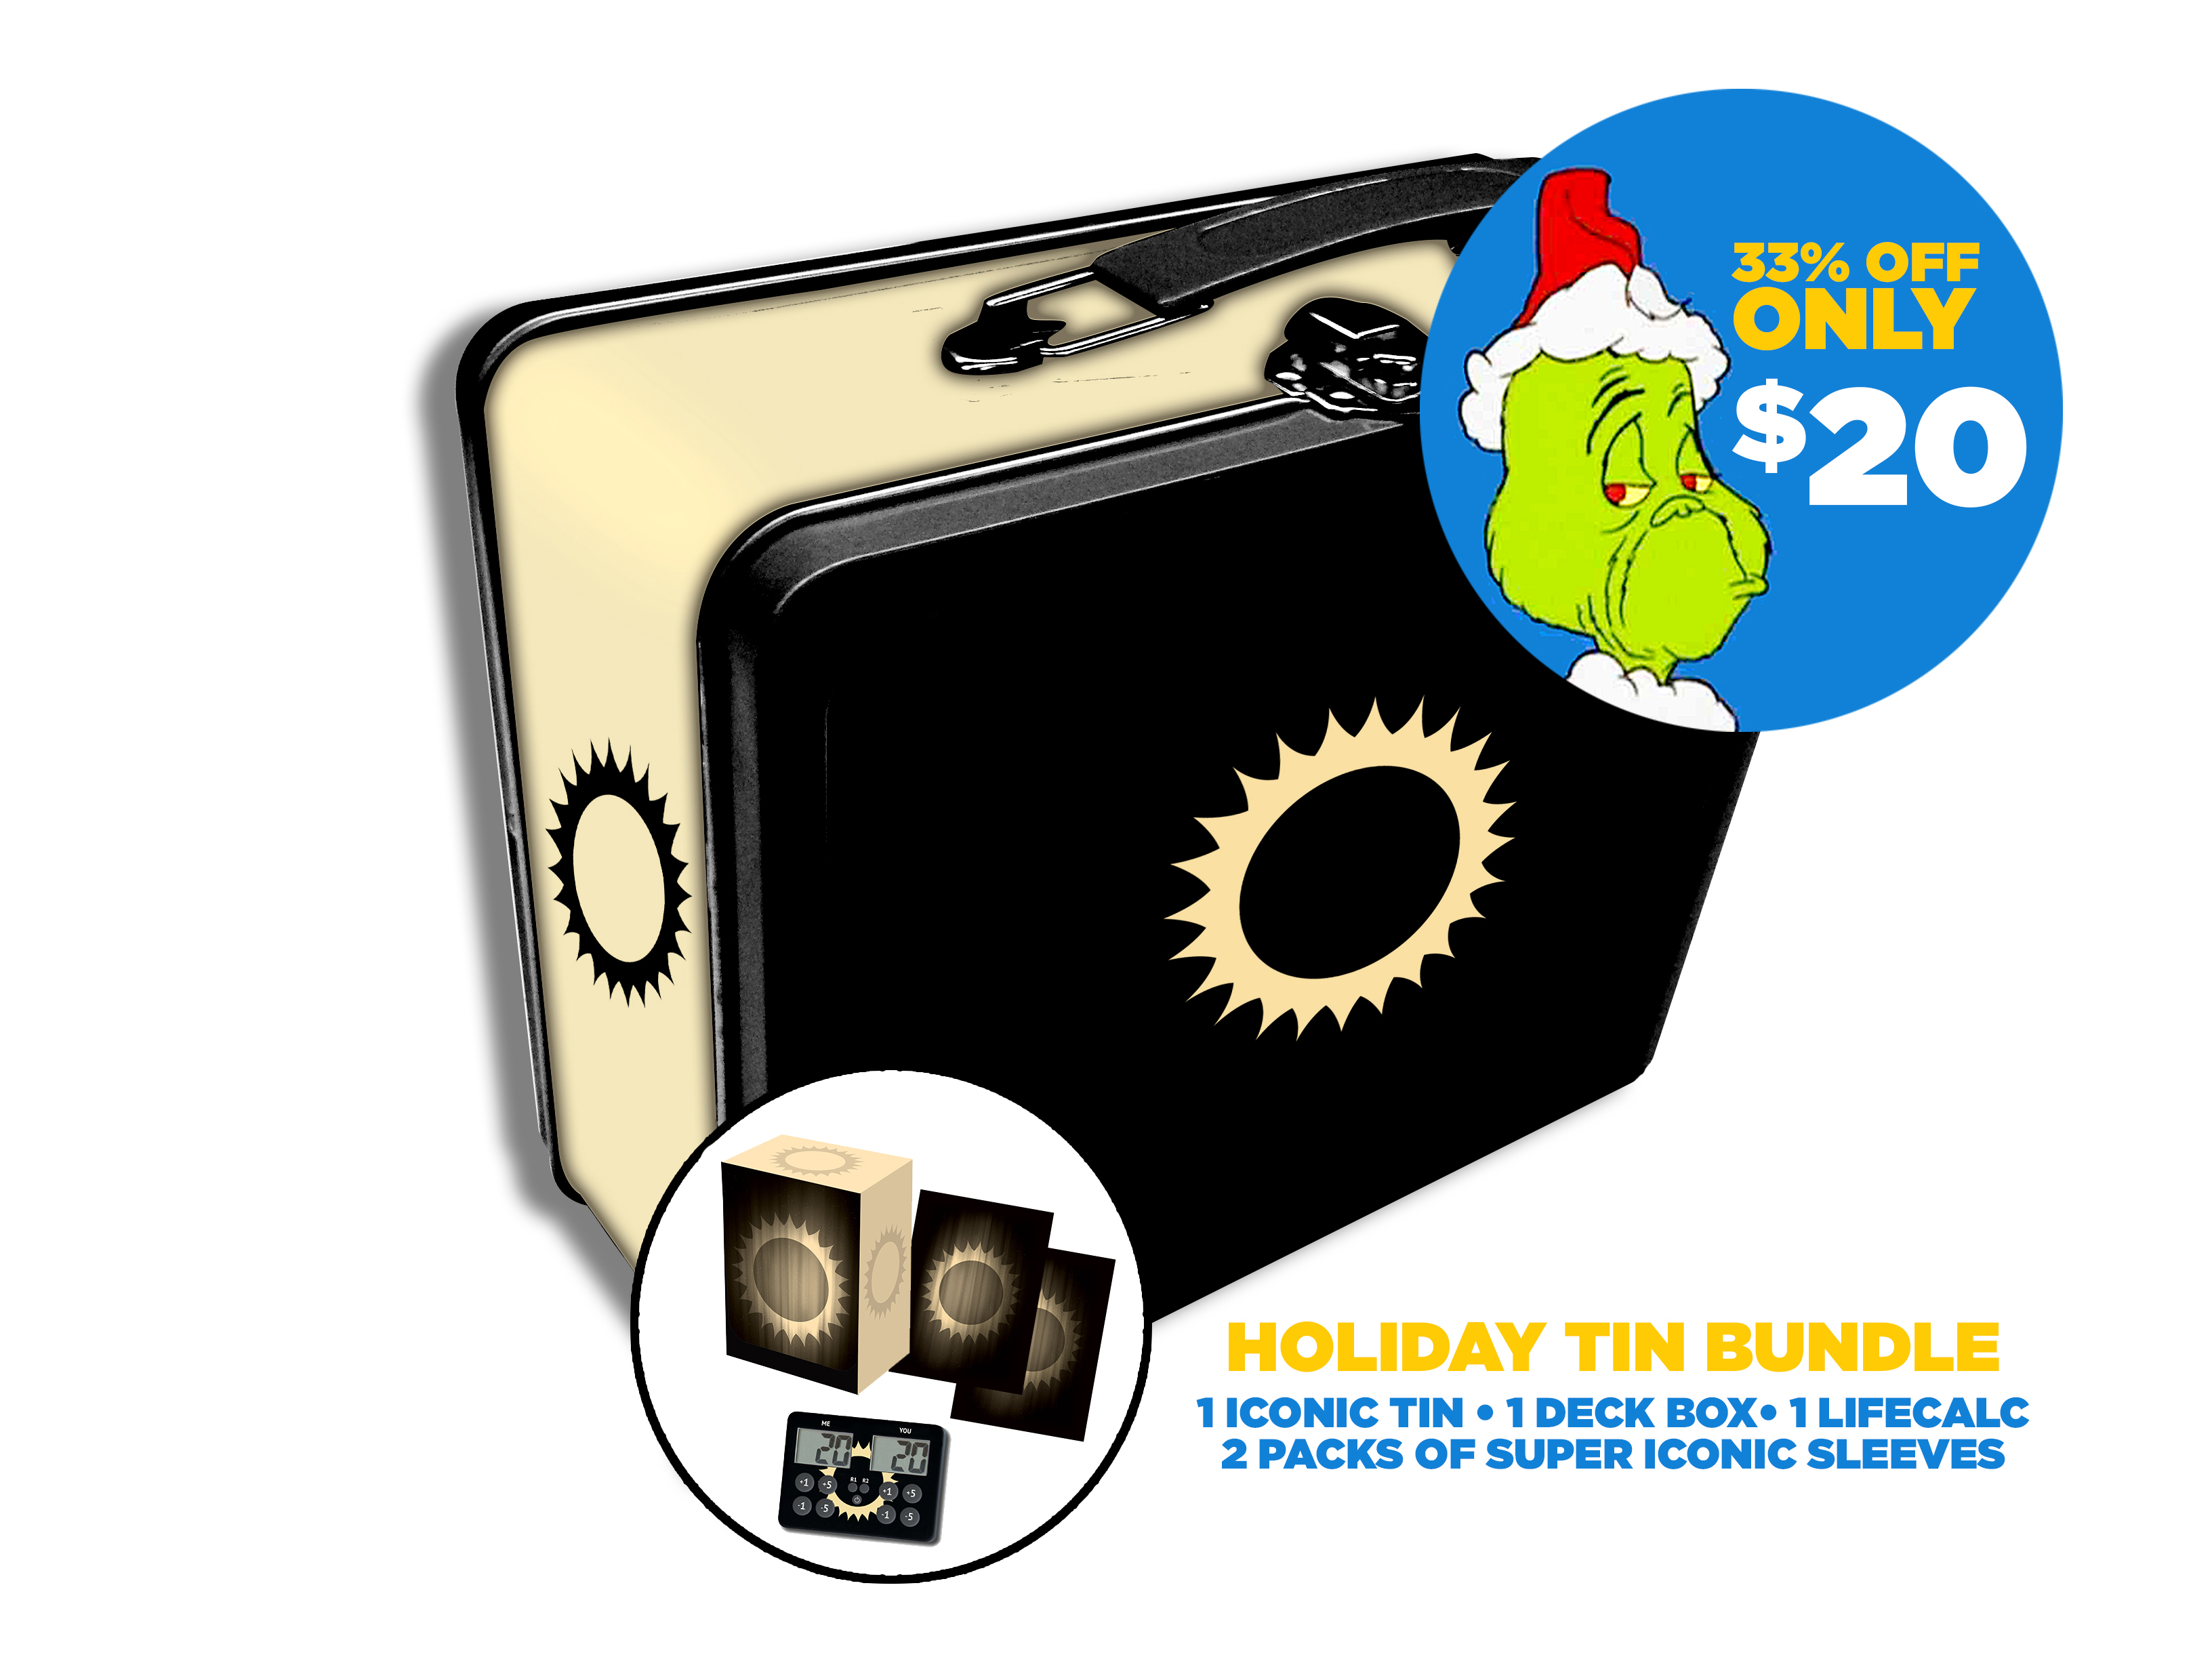 Iconic Sun Holiday Bundle